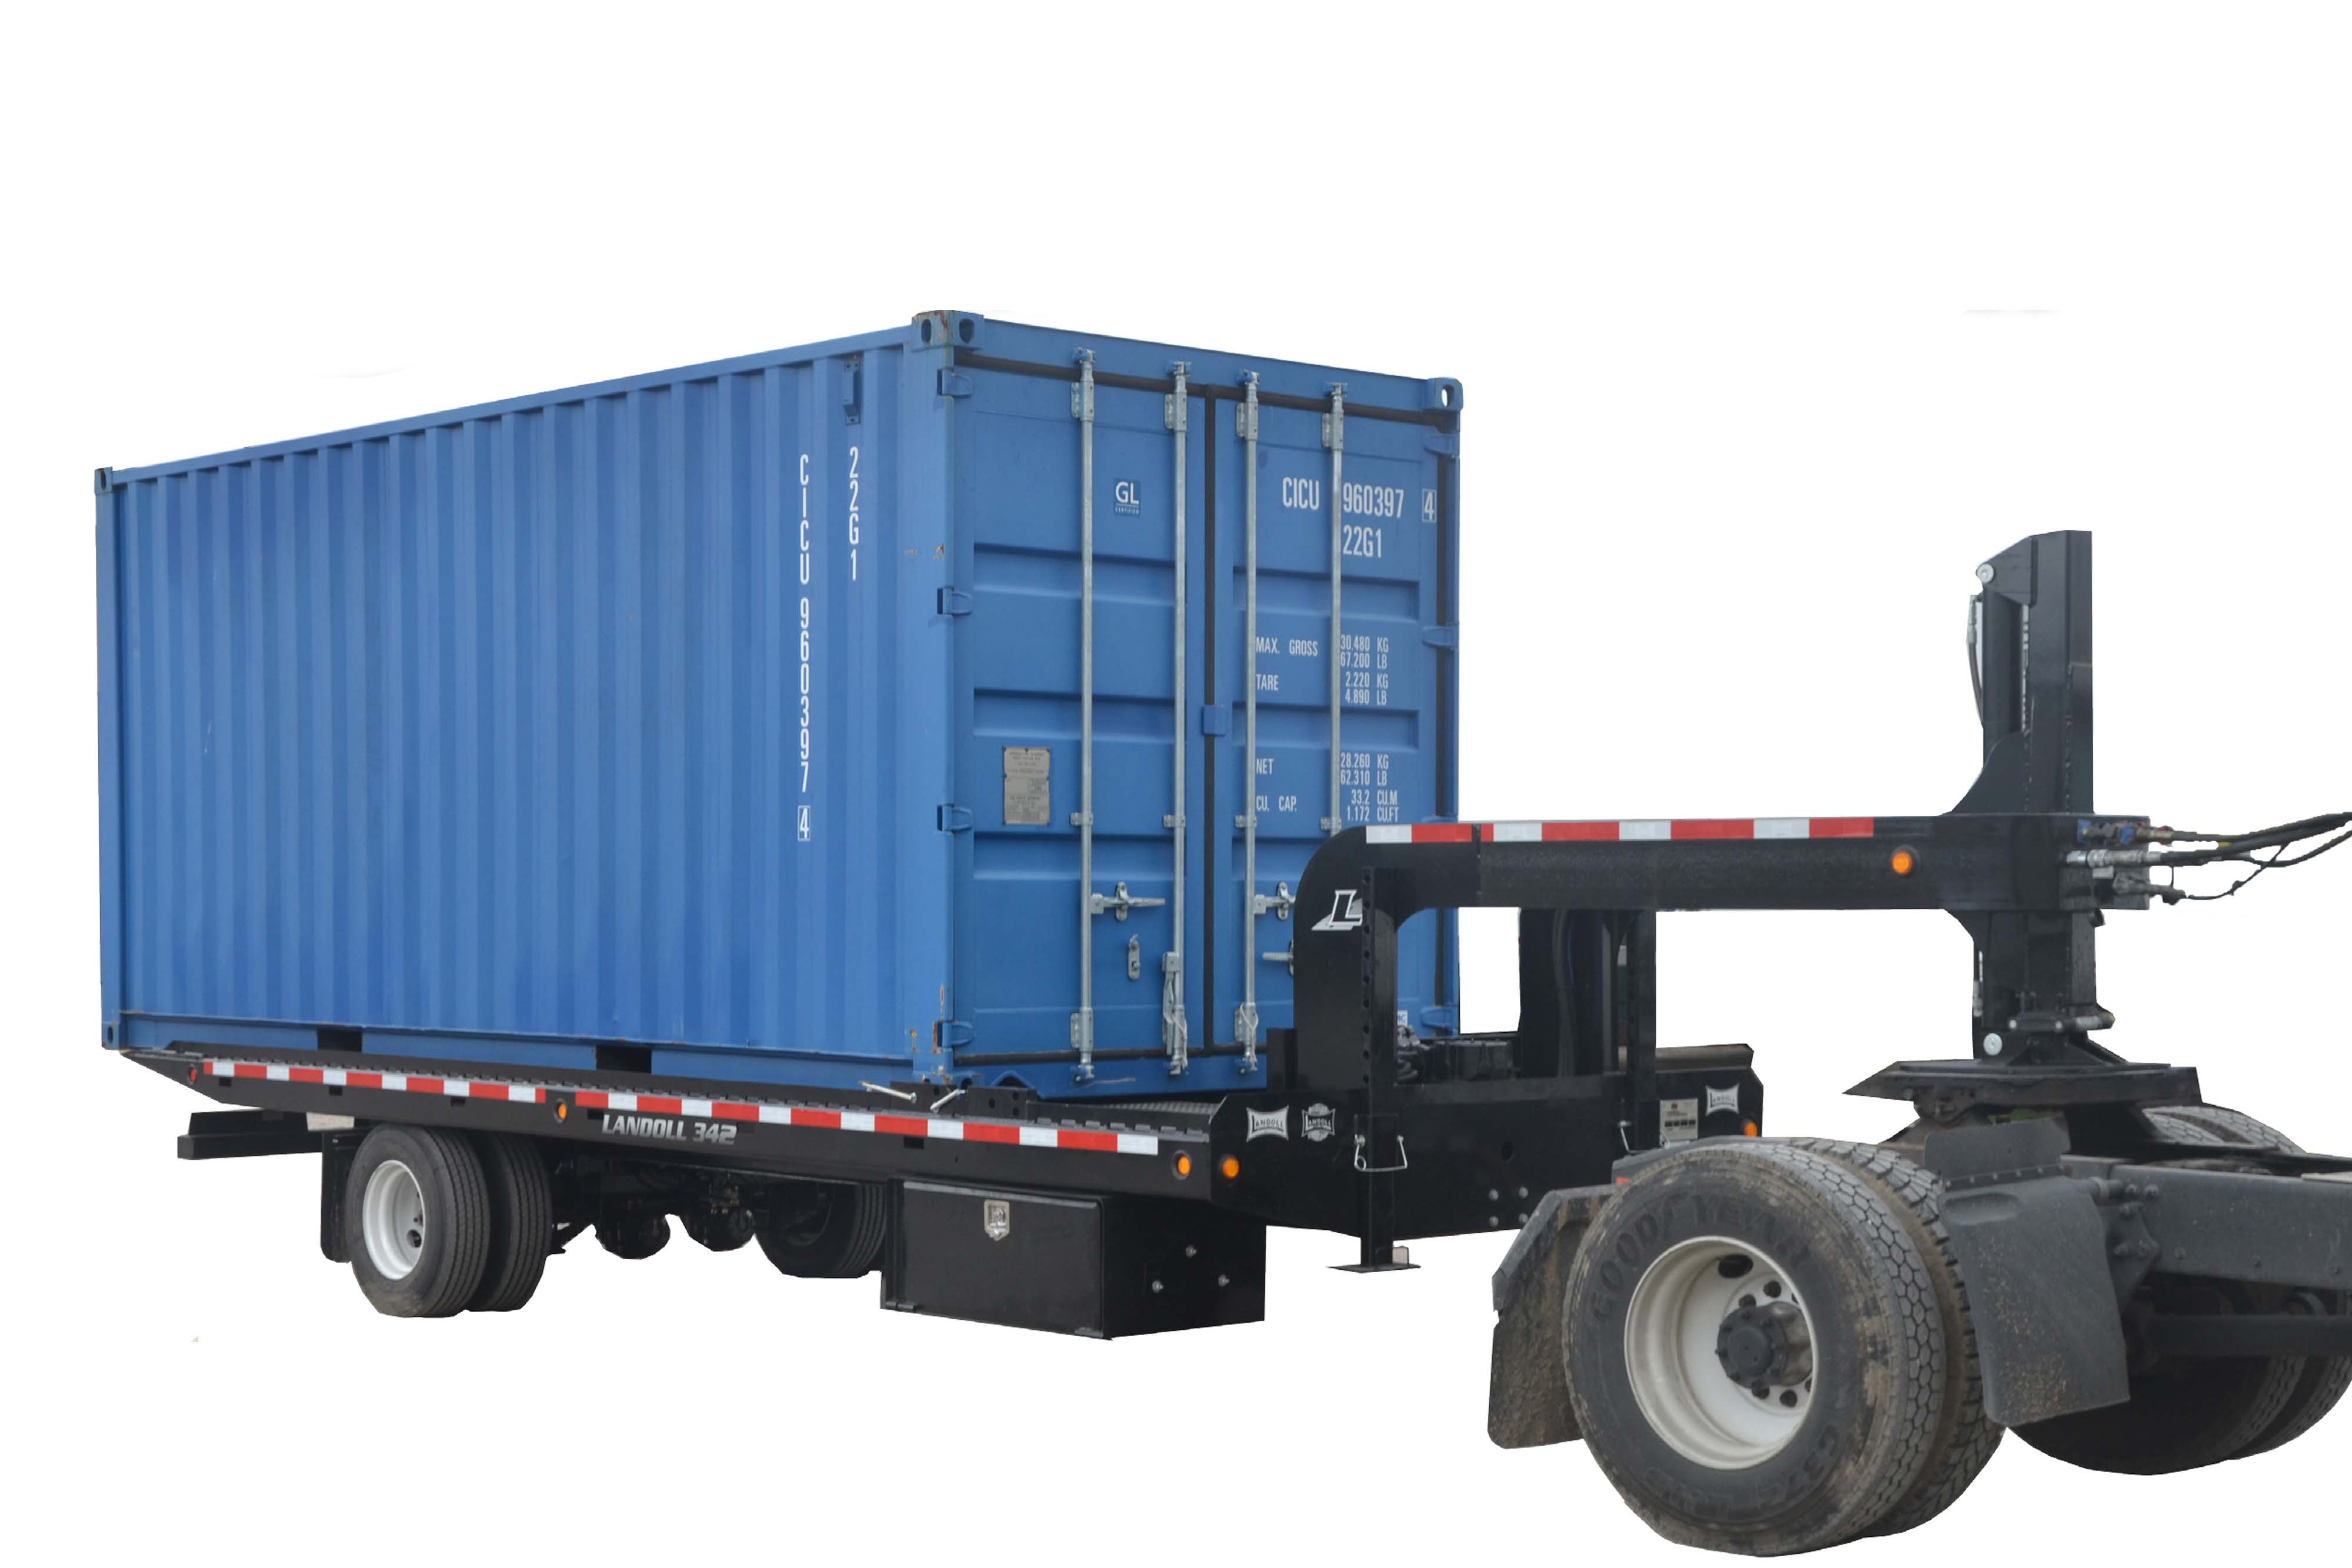 Car Carrier For Sale >> Landoll Model 342 Container Trailer | Eastern Wrecker Sales Inc